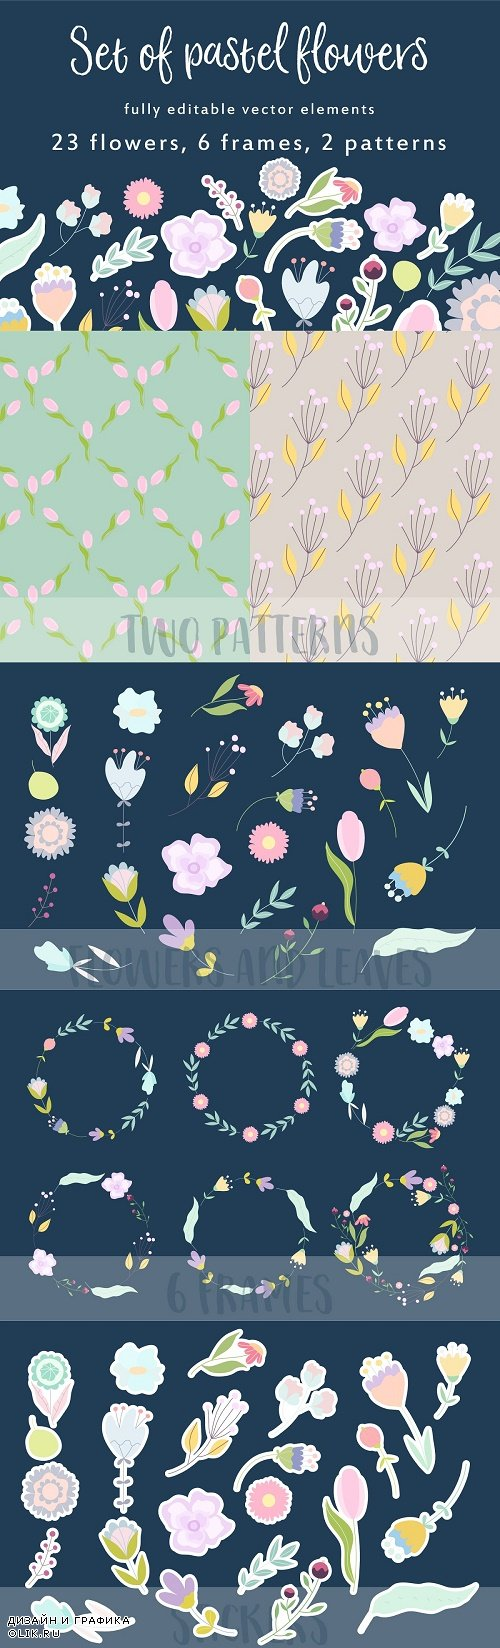 April meadow. Set of vector flowers - 1441627